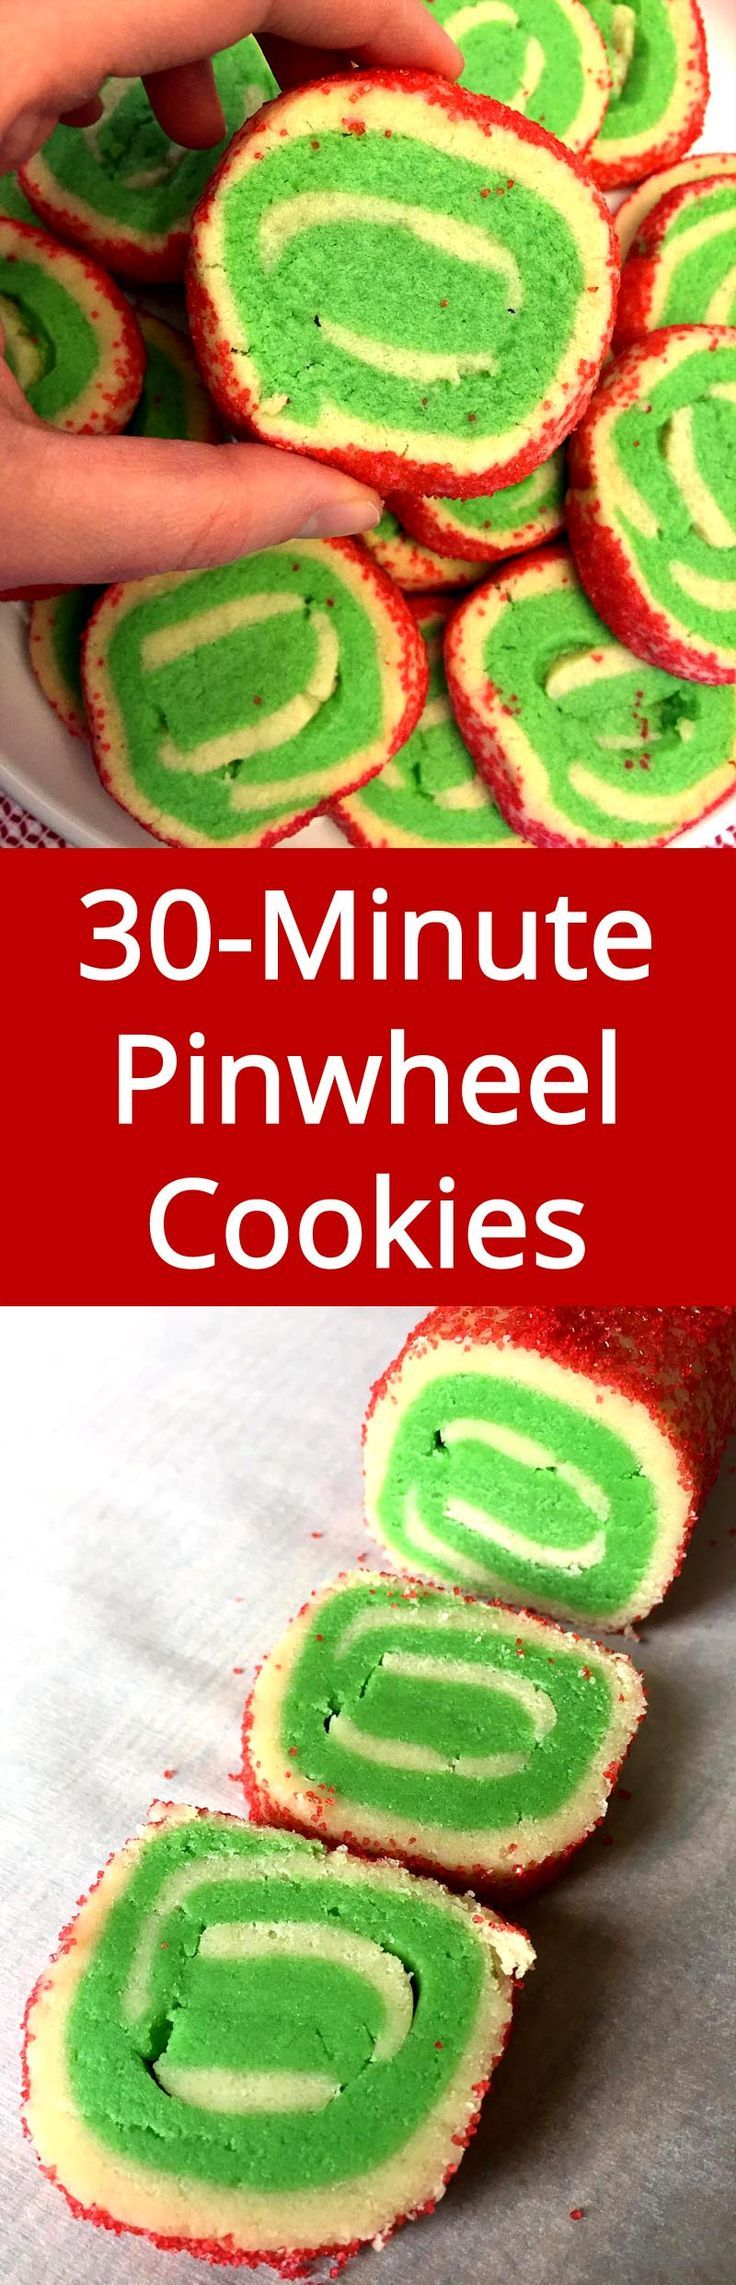 No need to chill the dough! I'm trying this ASAP! Love pinwheel cookies!| MelanieCooks.com